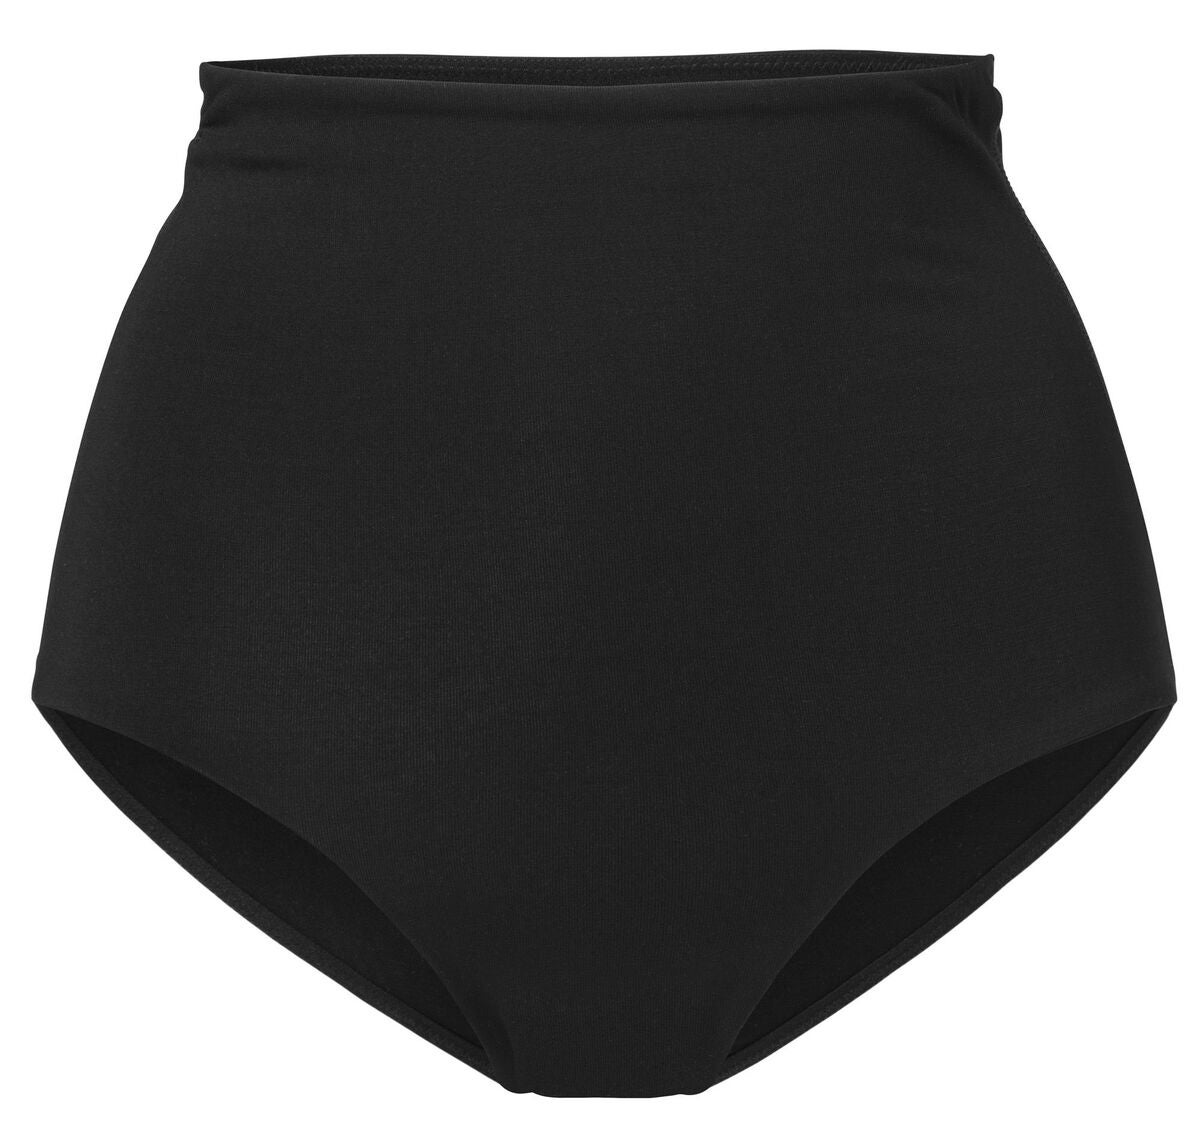 Boob Soft Support Truse, Black